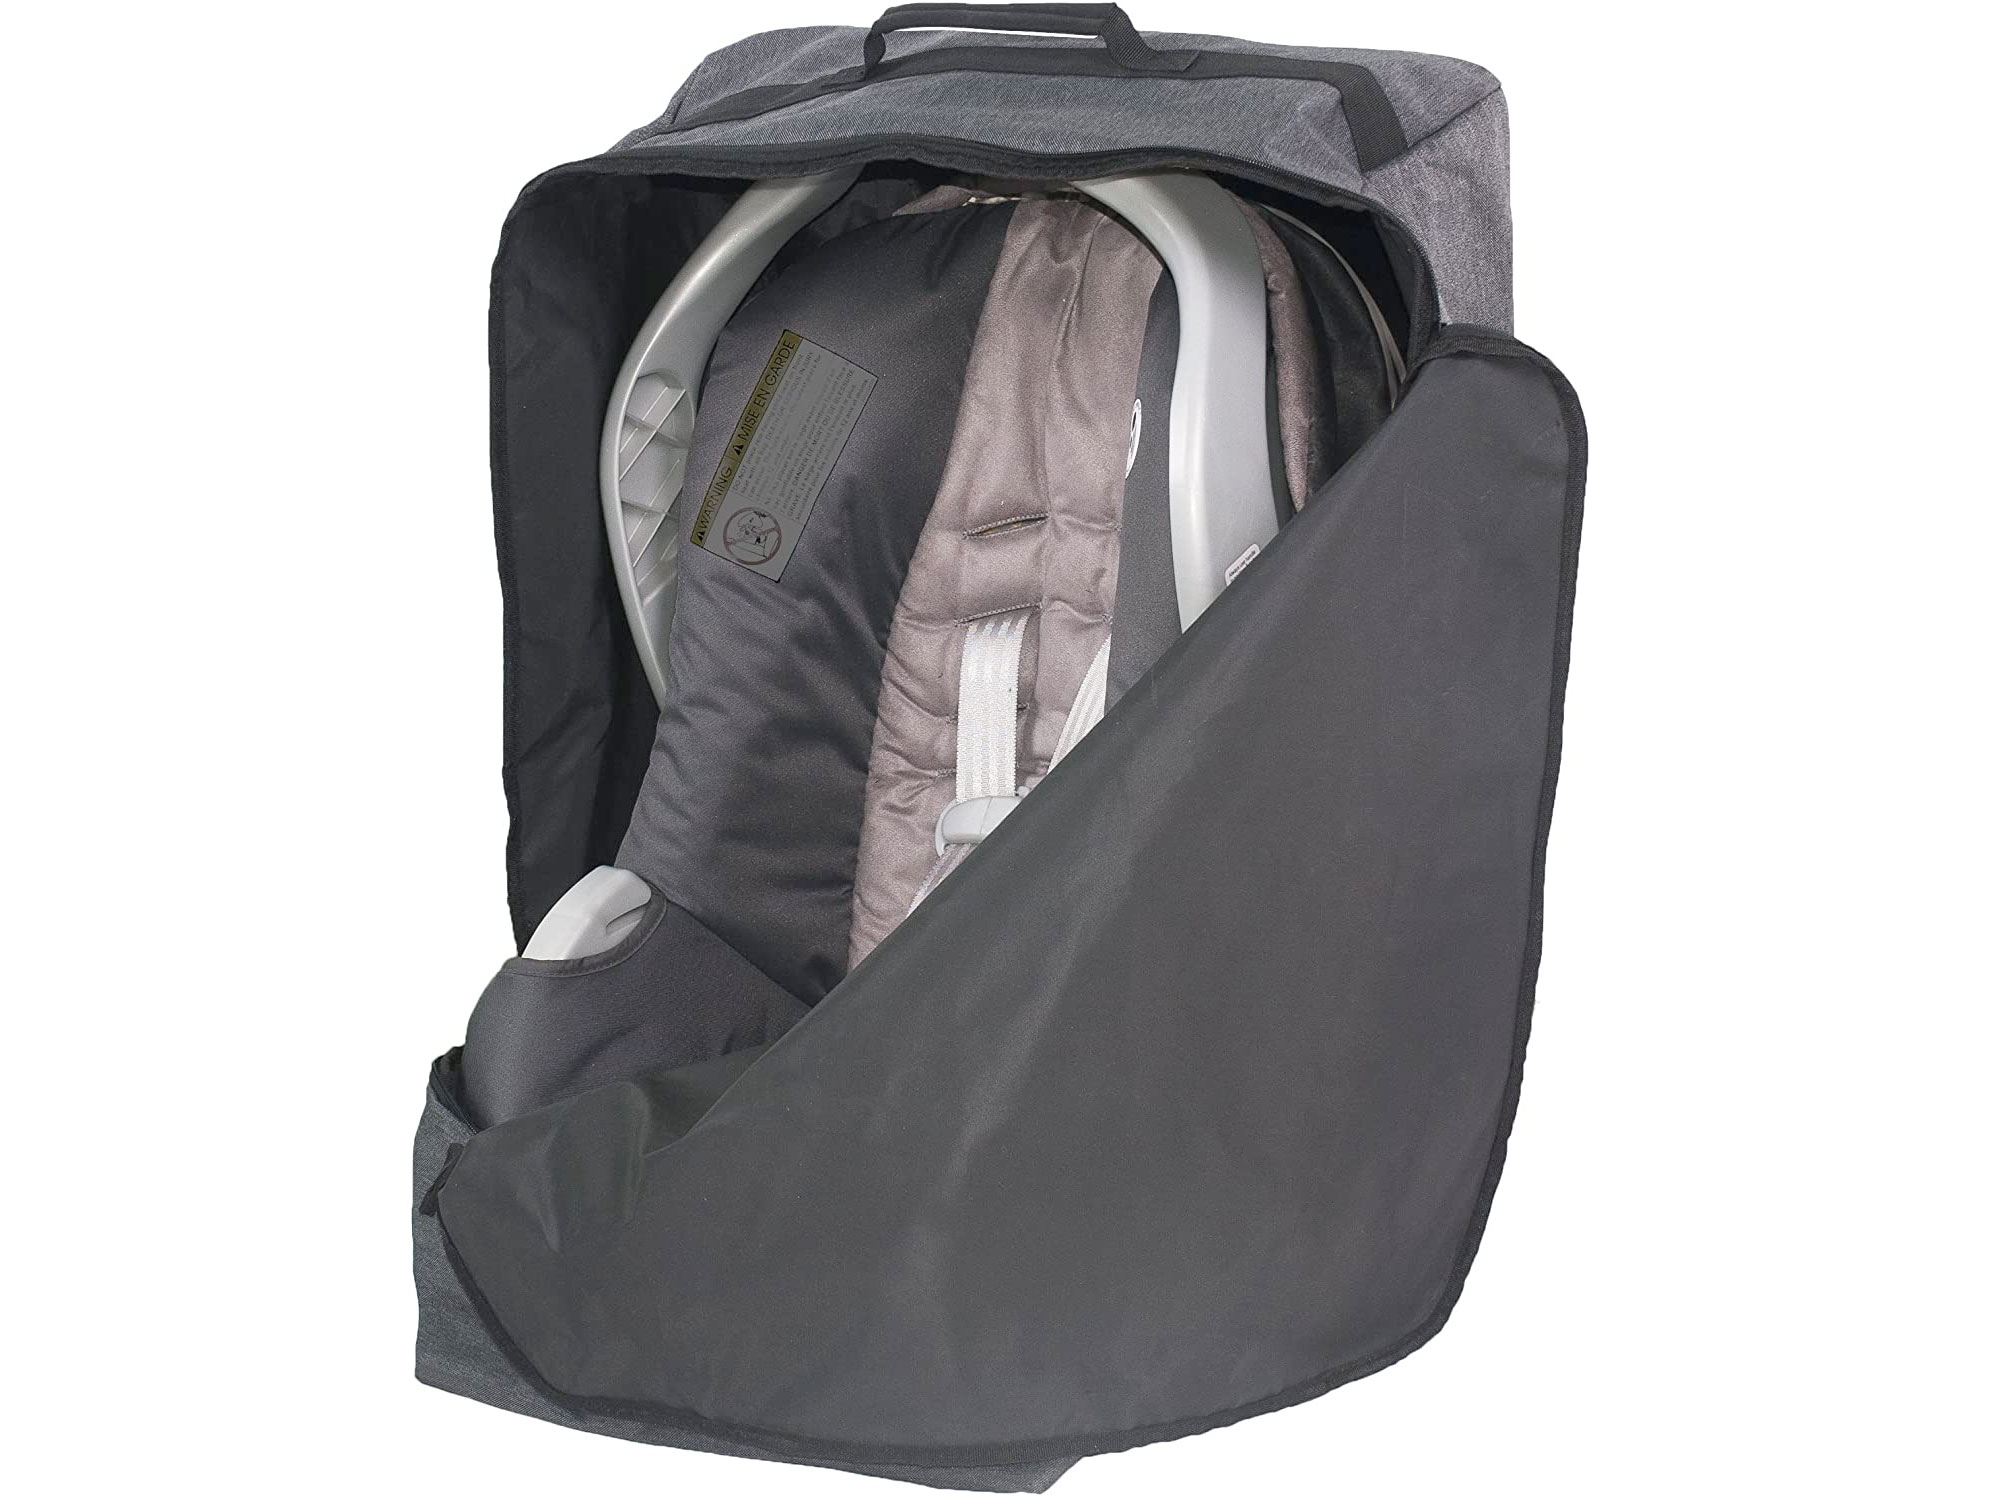 Amazon:Jolly Jumper Car Seat Travel Bag只賣$11.70